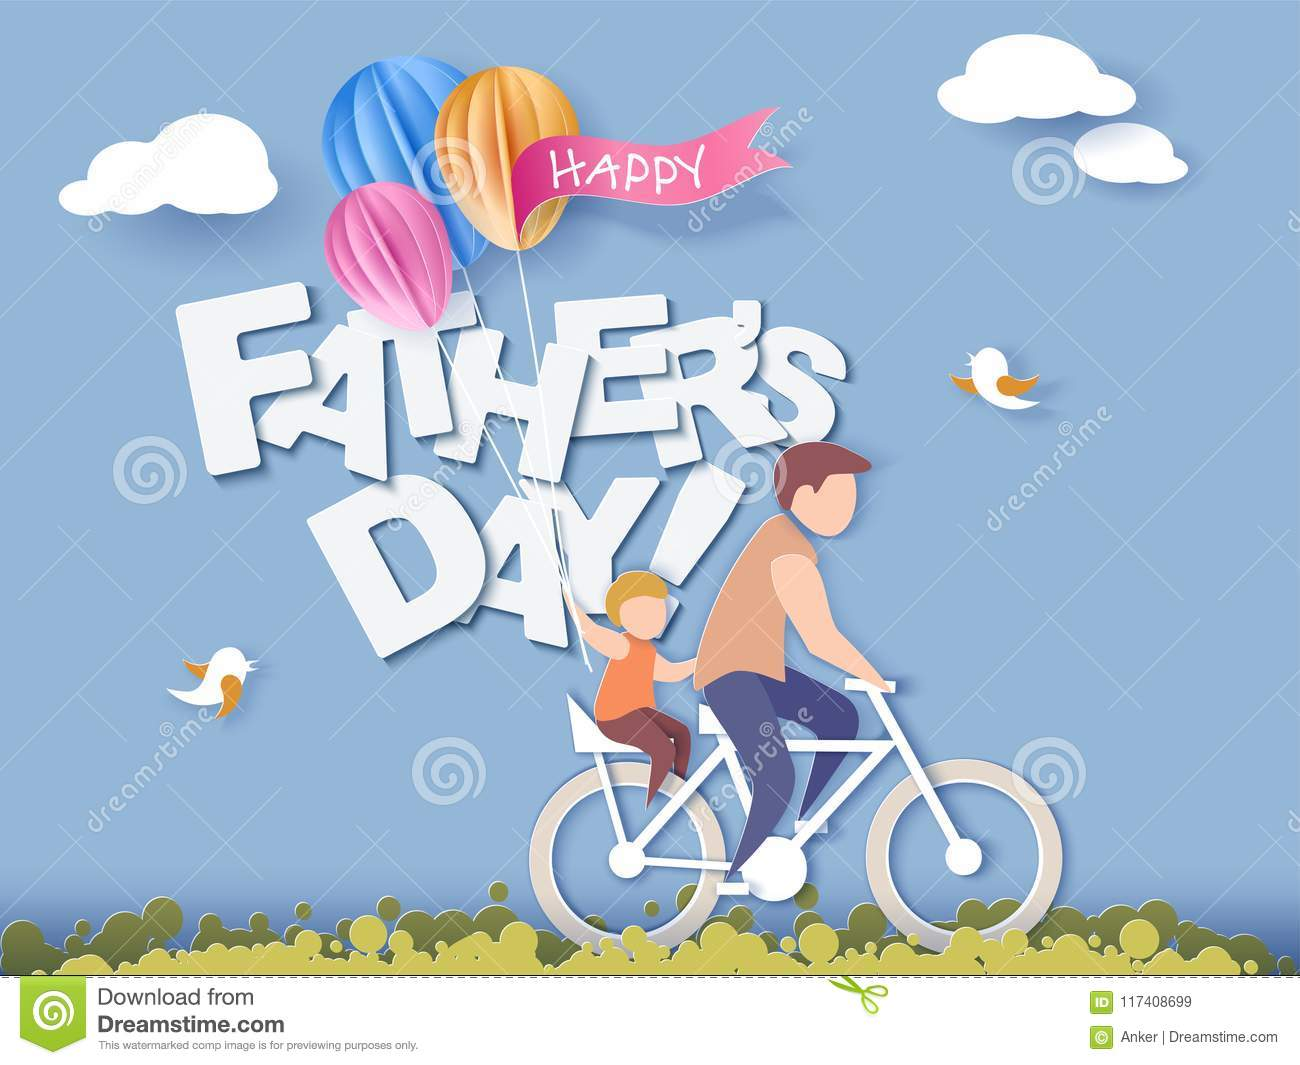 Happy Fathers Day Card Paper Cut Style Stock Vector Illustration